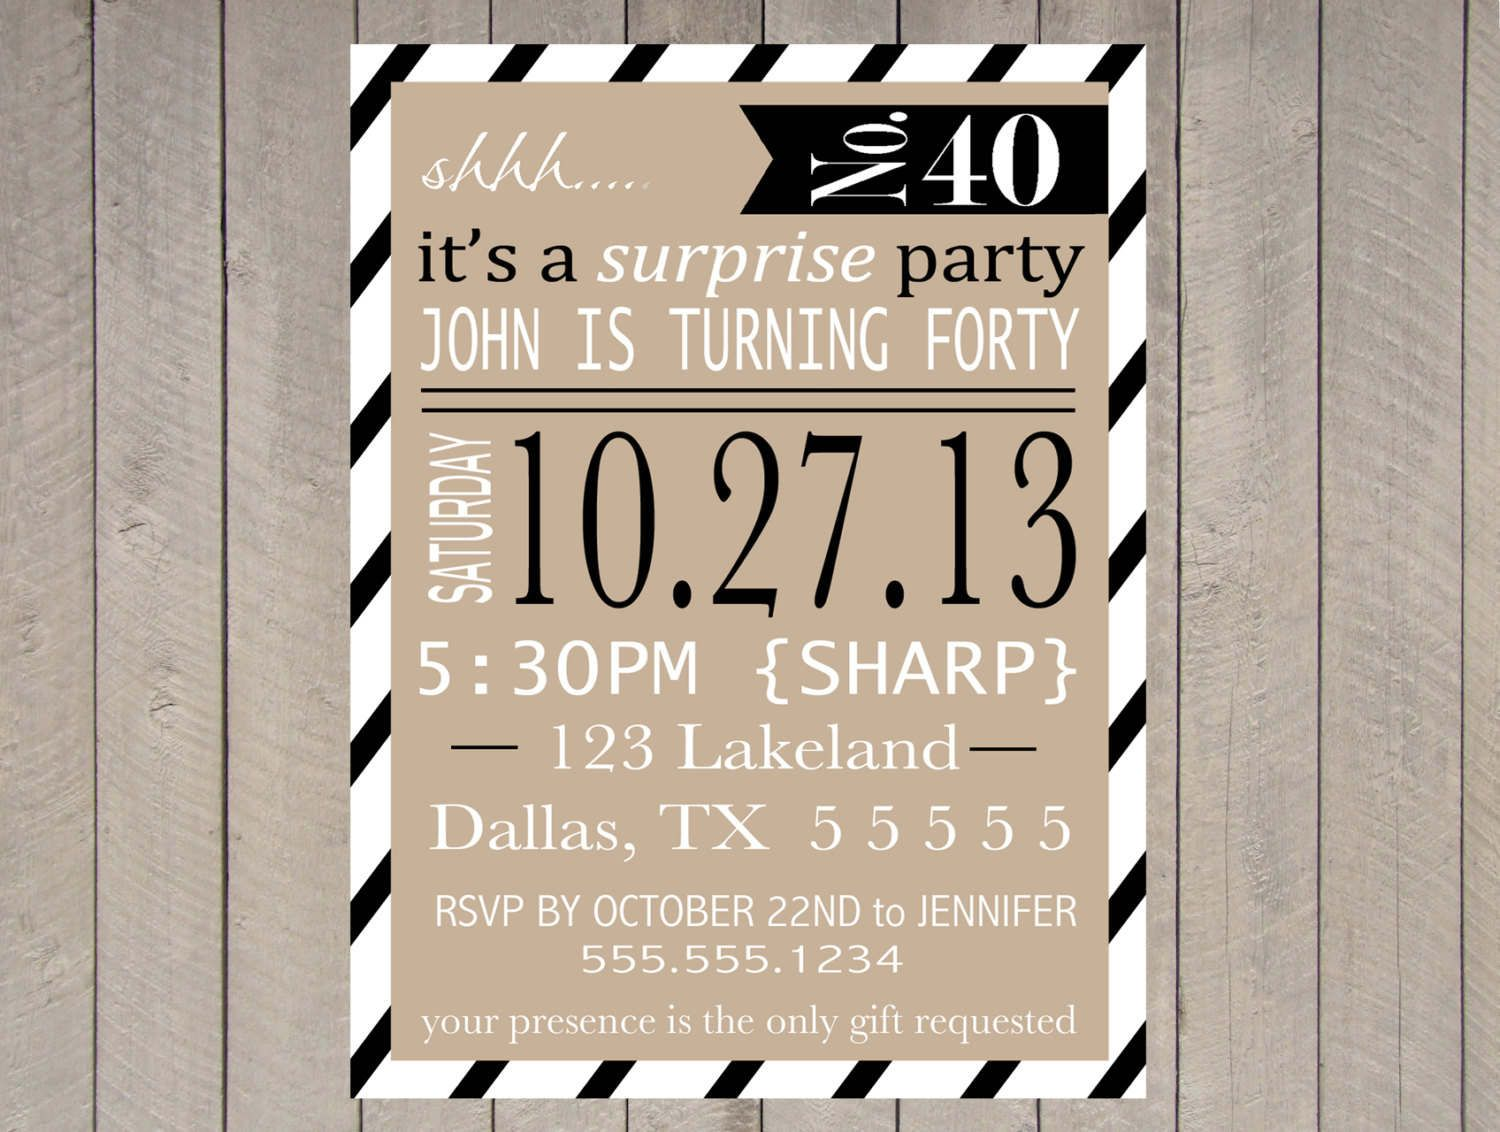 printable surprise party invitation templates party printable surprise party invitation templates